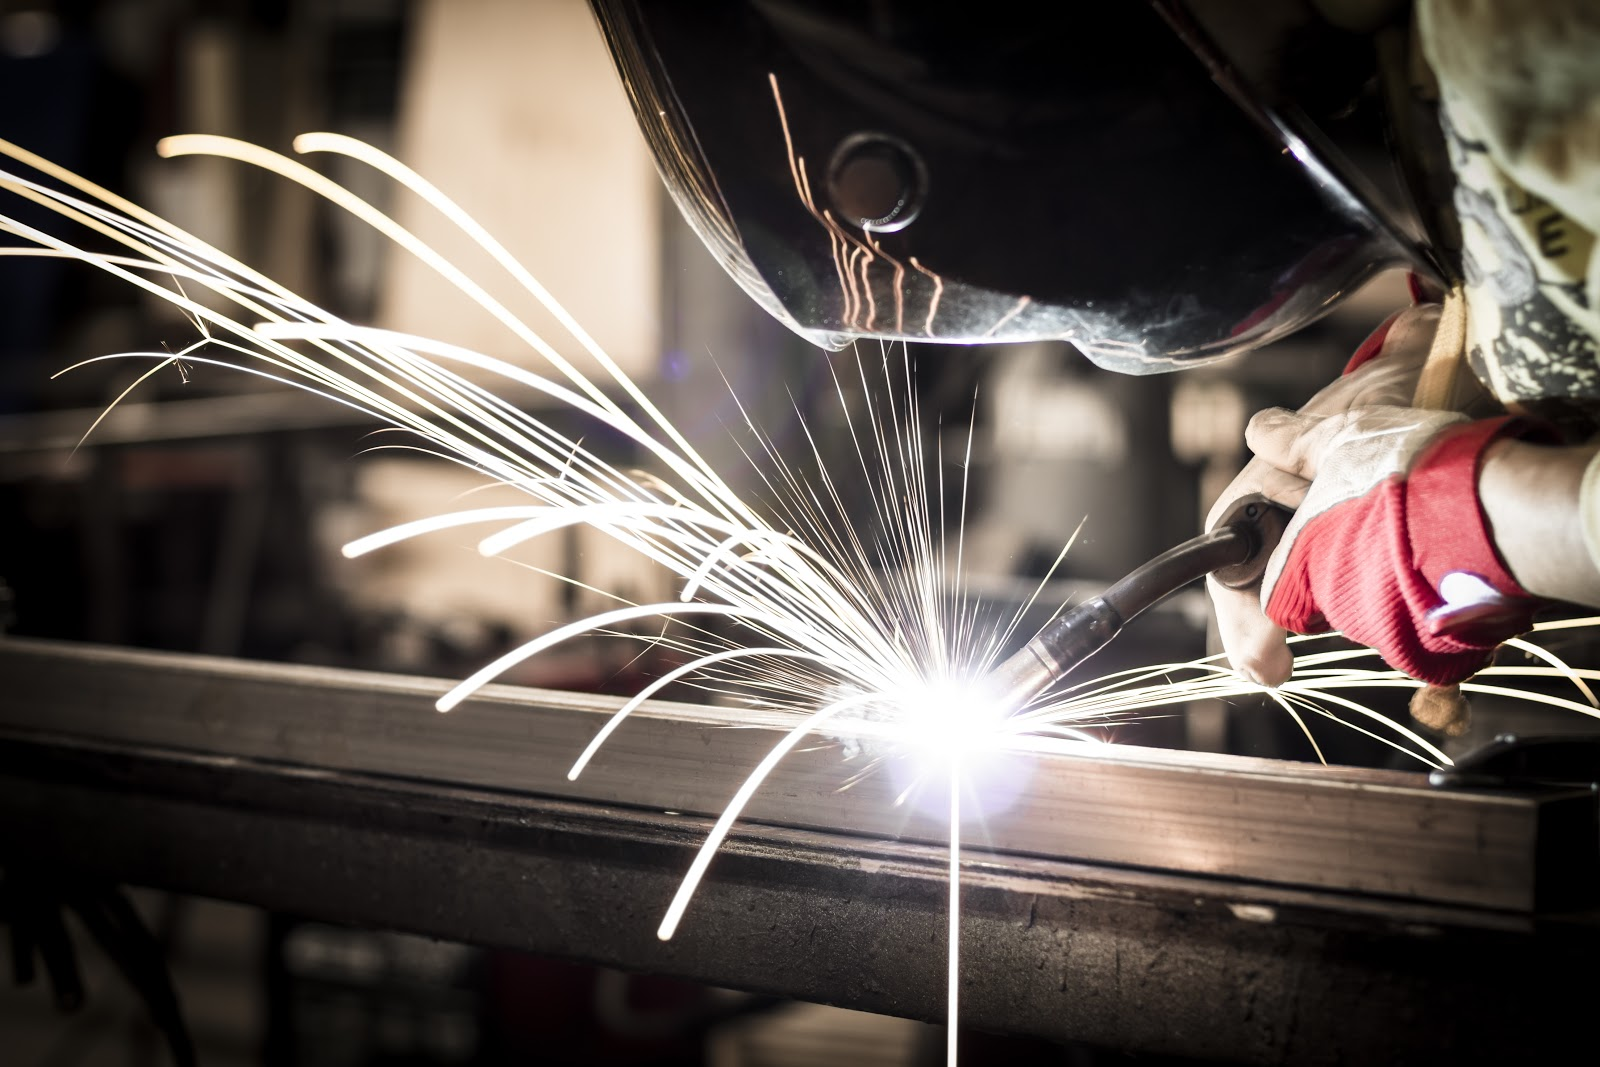 Welder gently works on steel material for precise and accurate cuts at the Kalisch Welding Shop